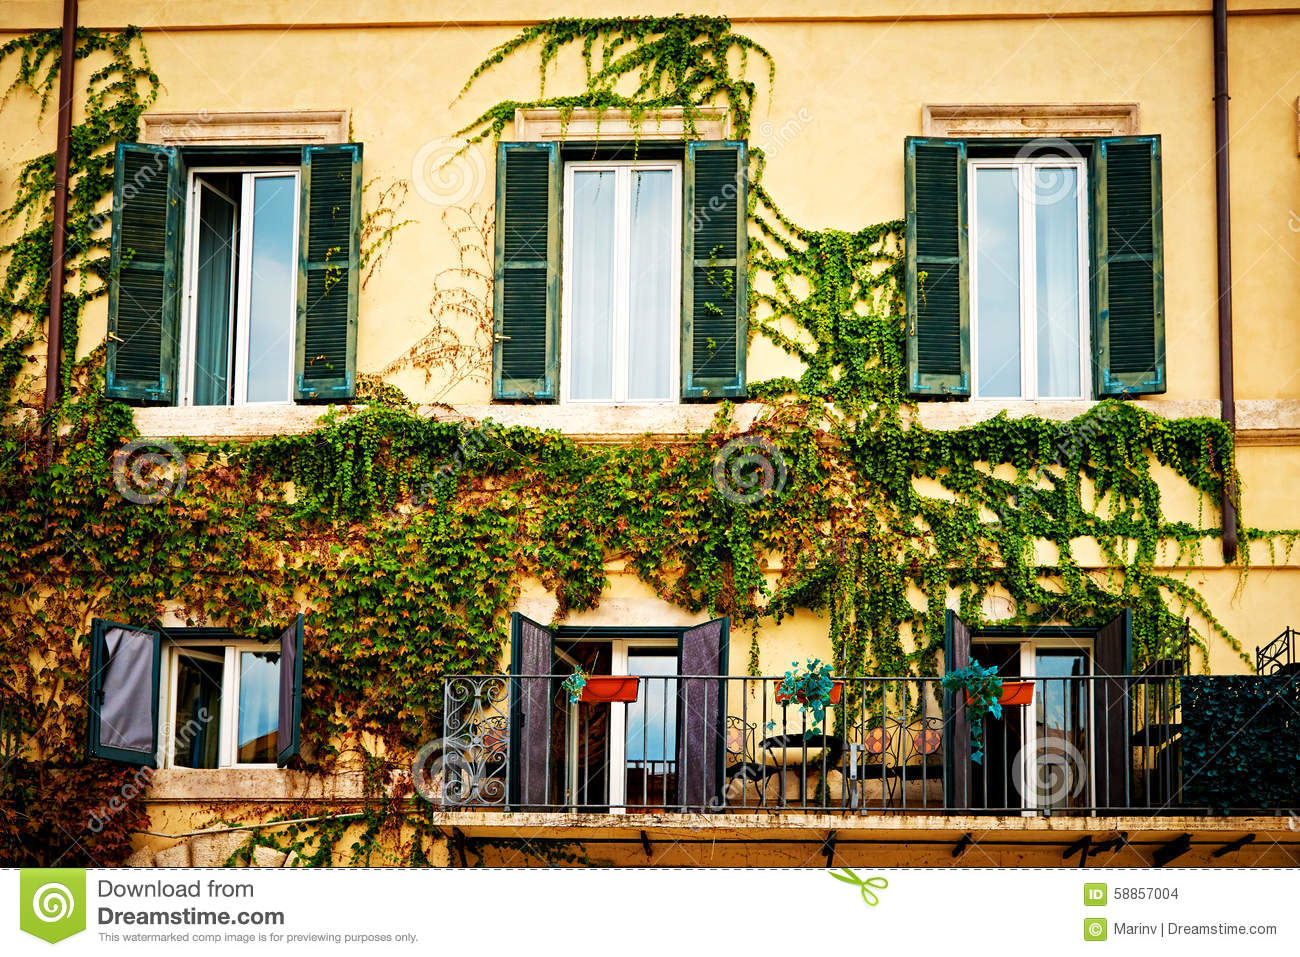 balconies full of flowers decorate houses in rome, italy stock